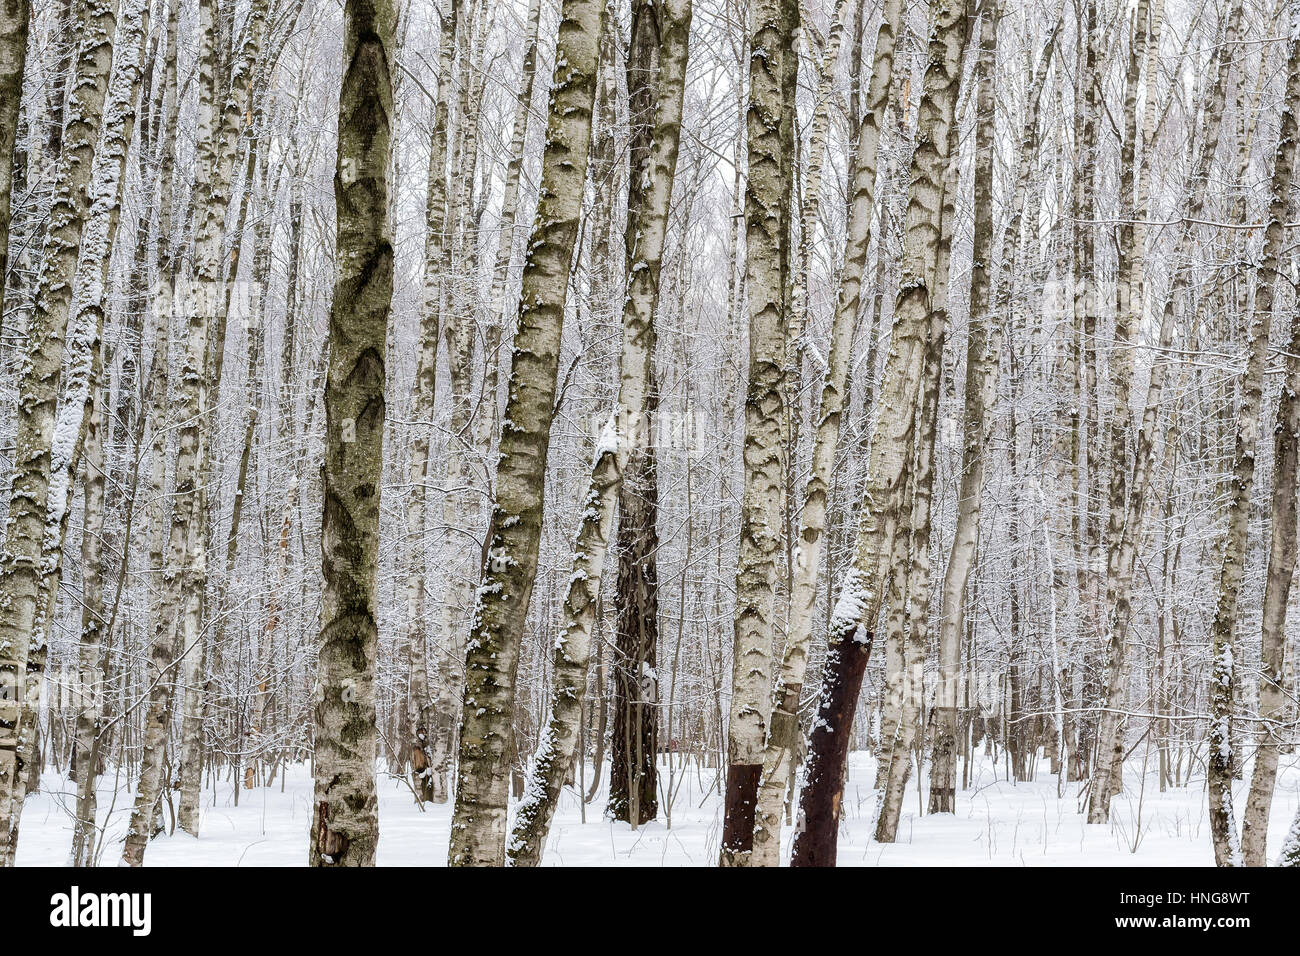 Snowy winter forest. - Stock Image